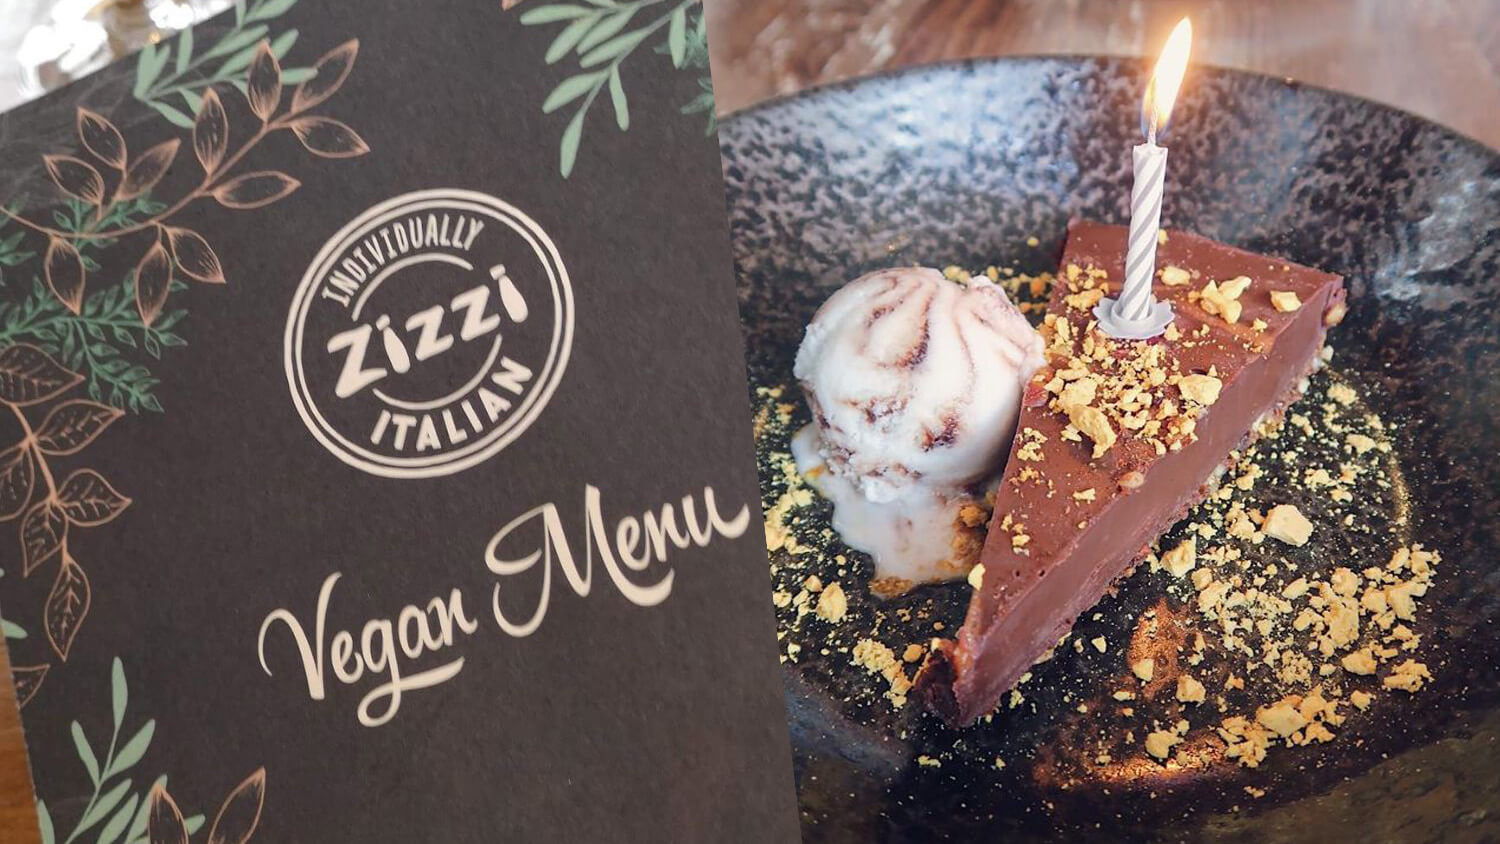 Zizzi Launches Vegan Christmas Menu With Meat-Free Meatballs and Dairy-Free Sticky Chocolate and Praline Torte